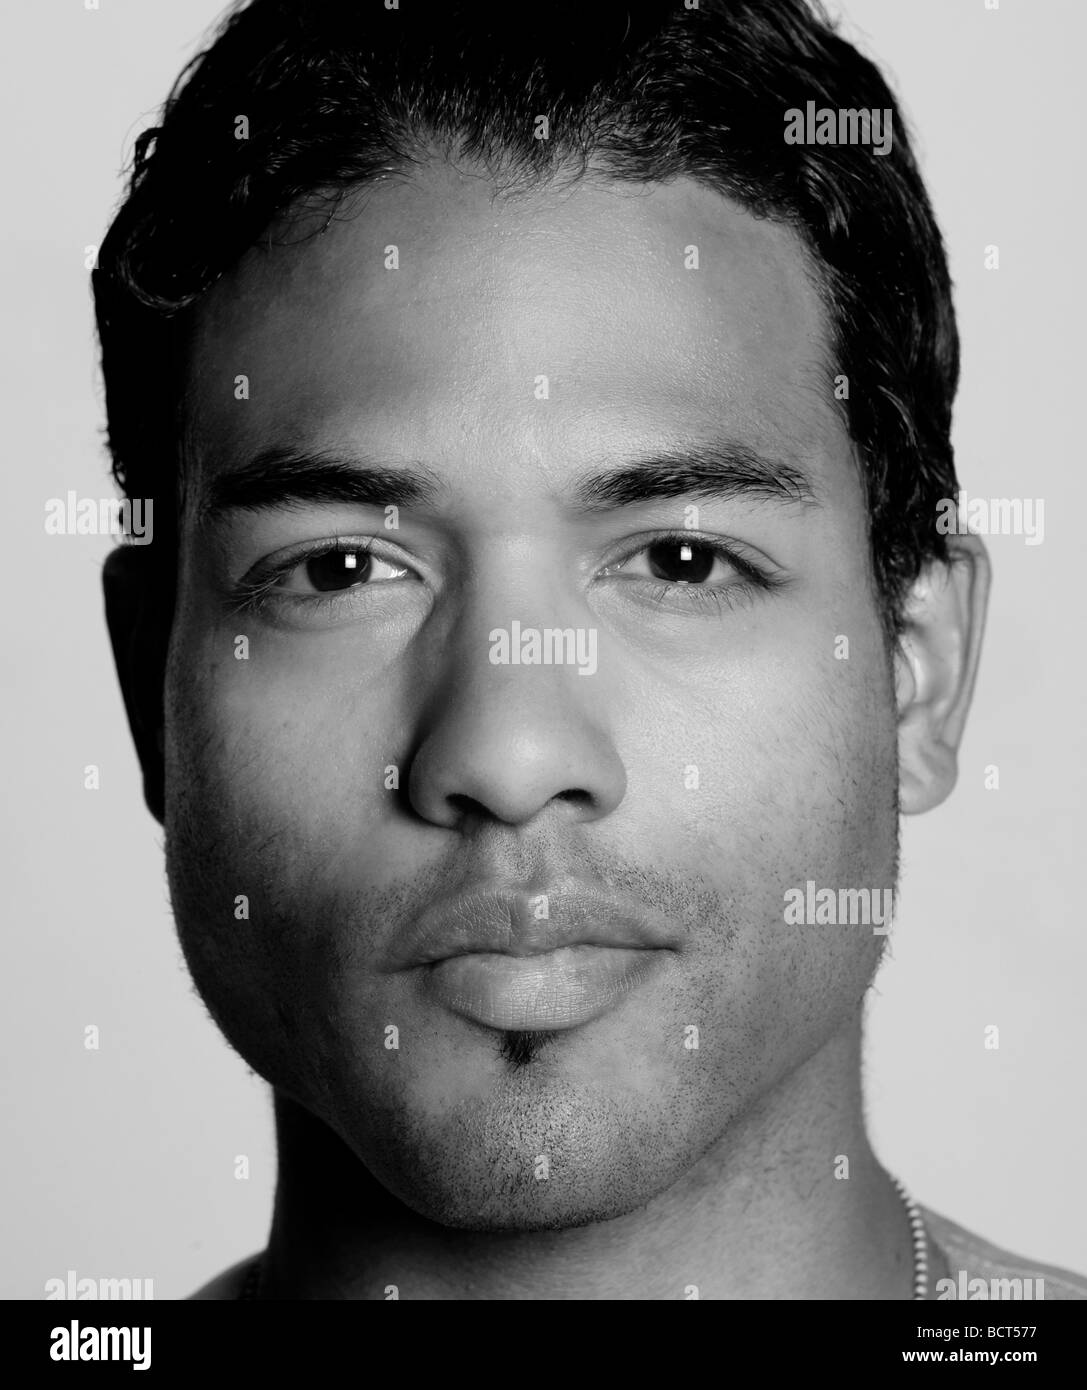 bi-racial male looking straight forward into the camera, twenties, 20's, 27, 28, 29, insightful, black and white - Stock Image